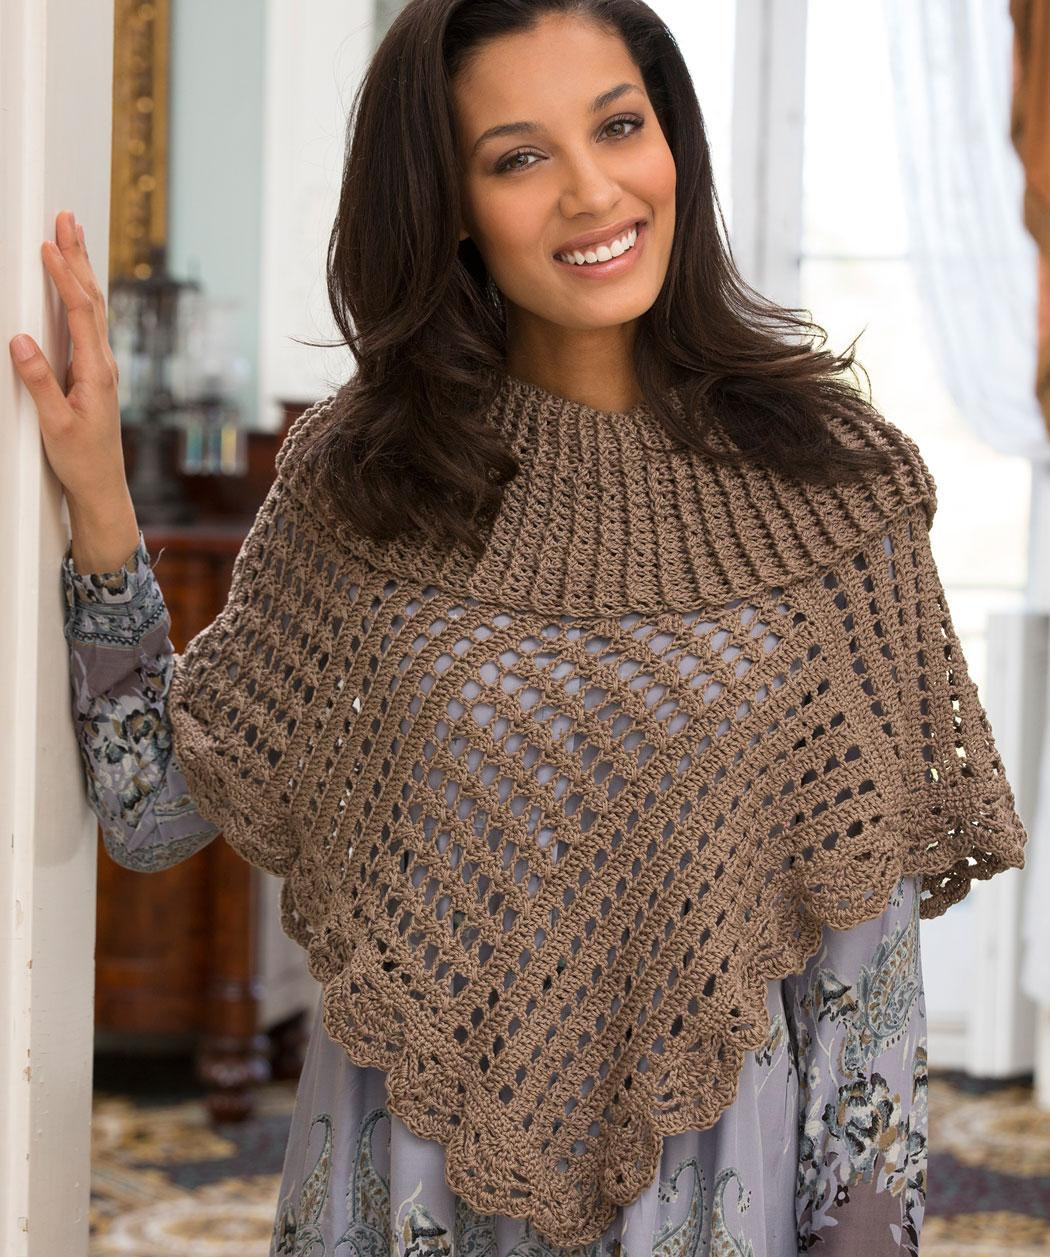 Red Heart Crochet Patterns Awesome Red Heart Crochet Poncho Of Charming 49 Models Red Heart Crochet Patterns